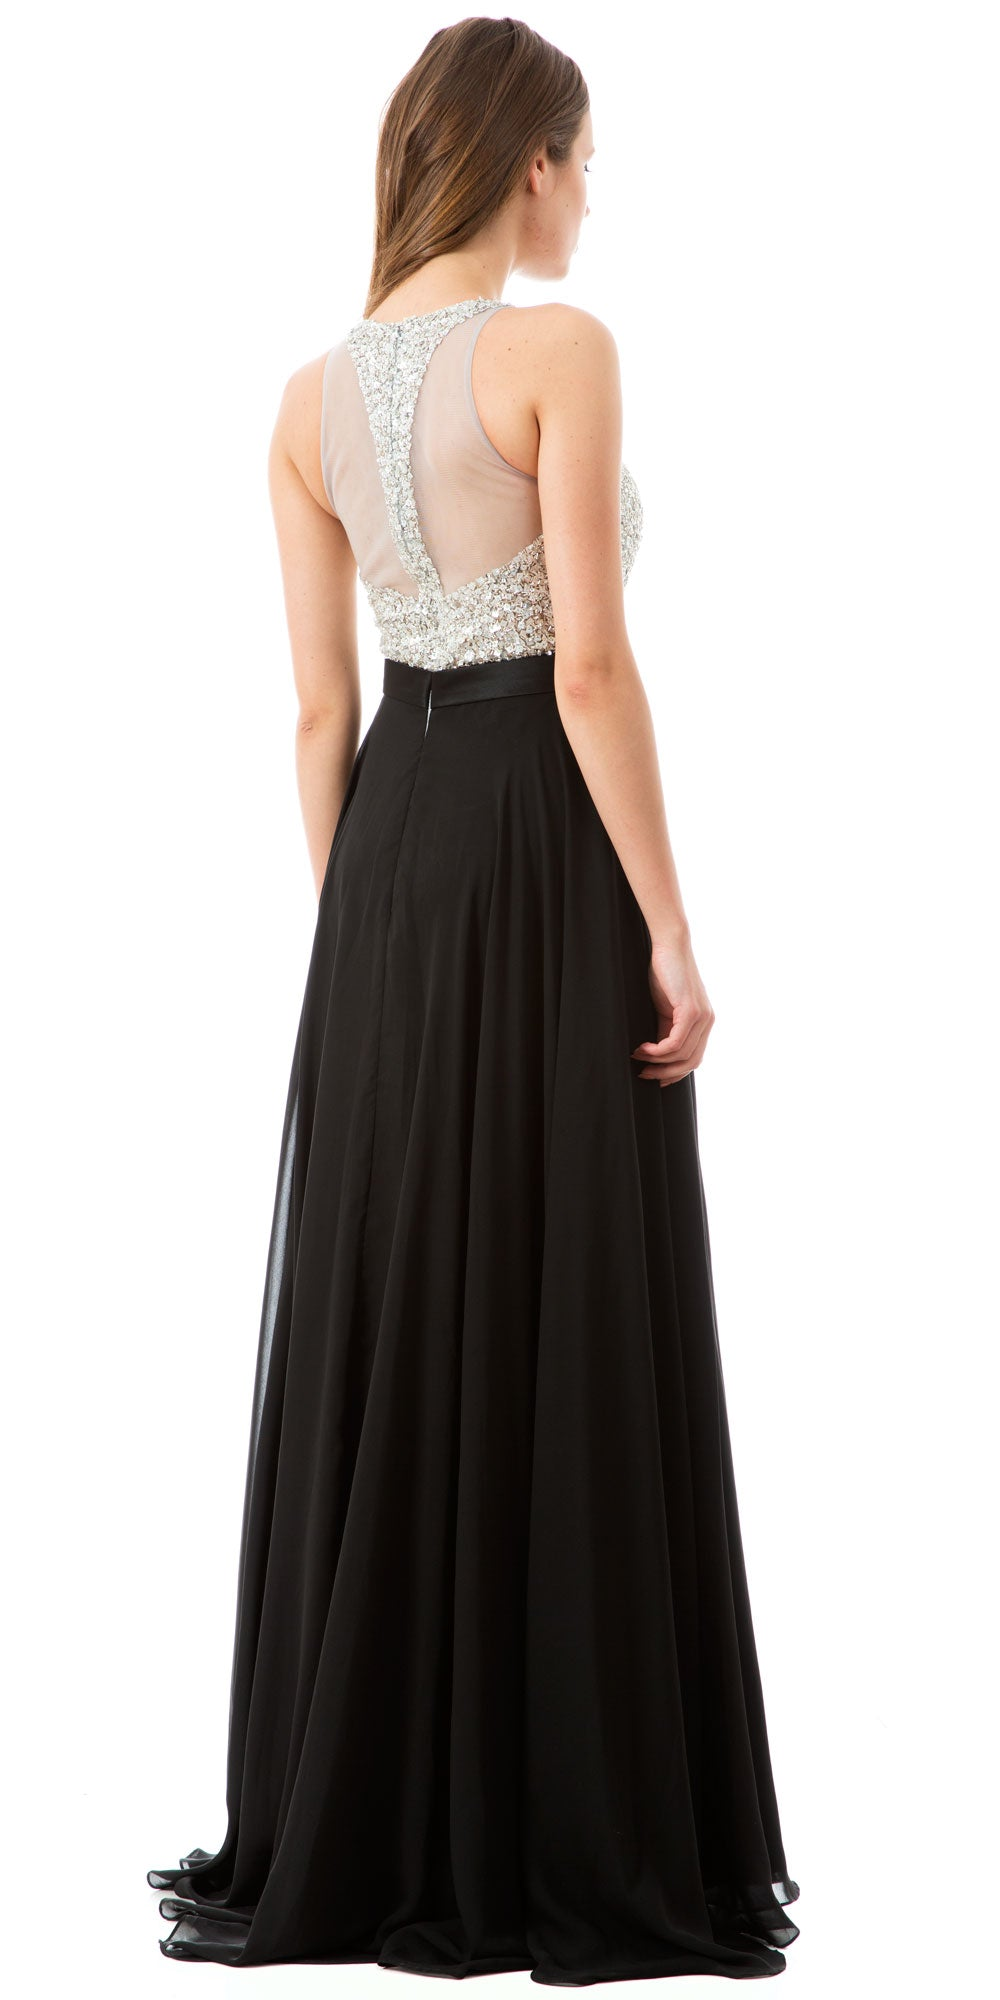 Back image of Jewel Bodice Chiffon Skirt Long Formal Prom Dress